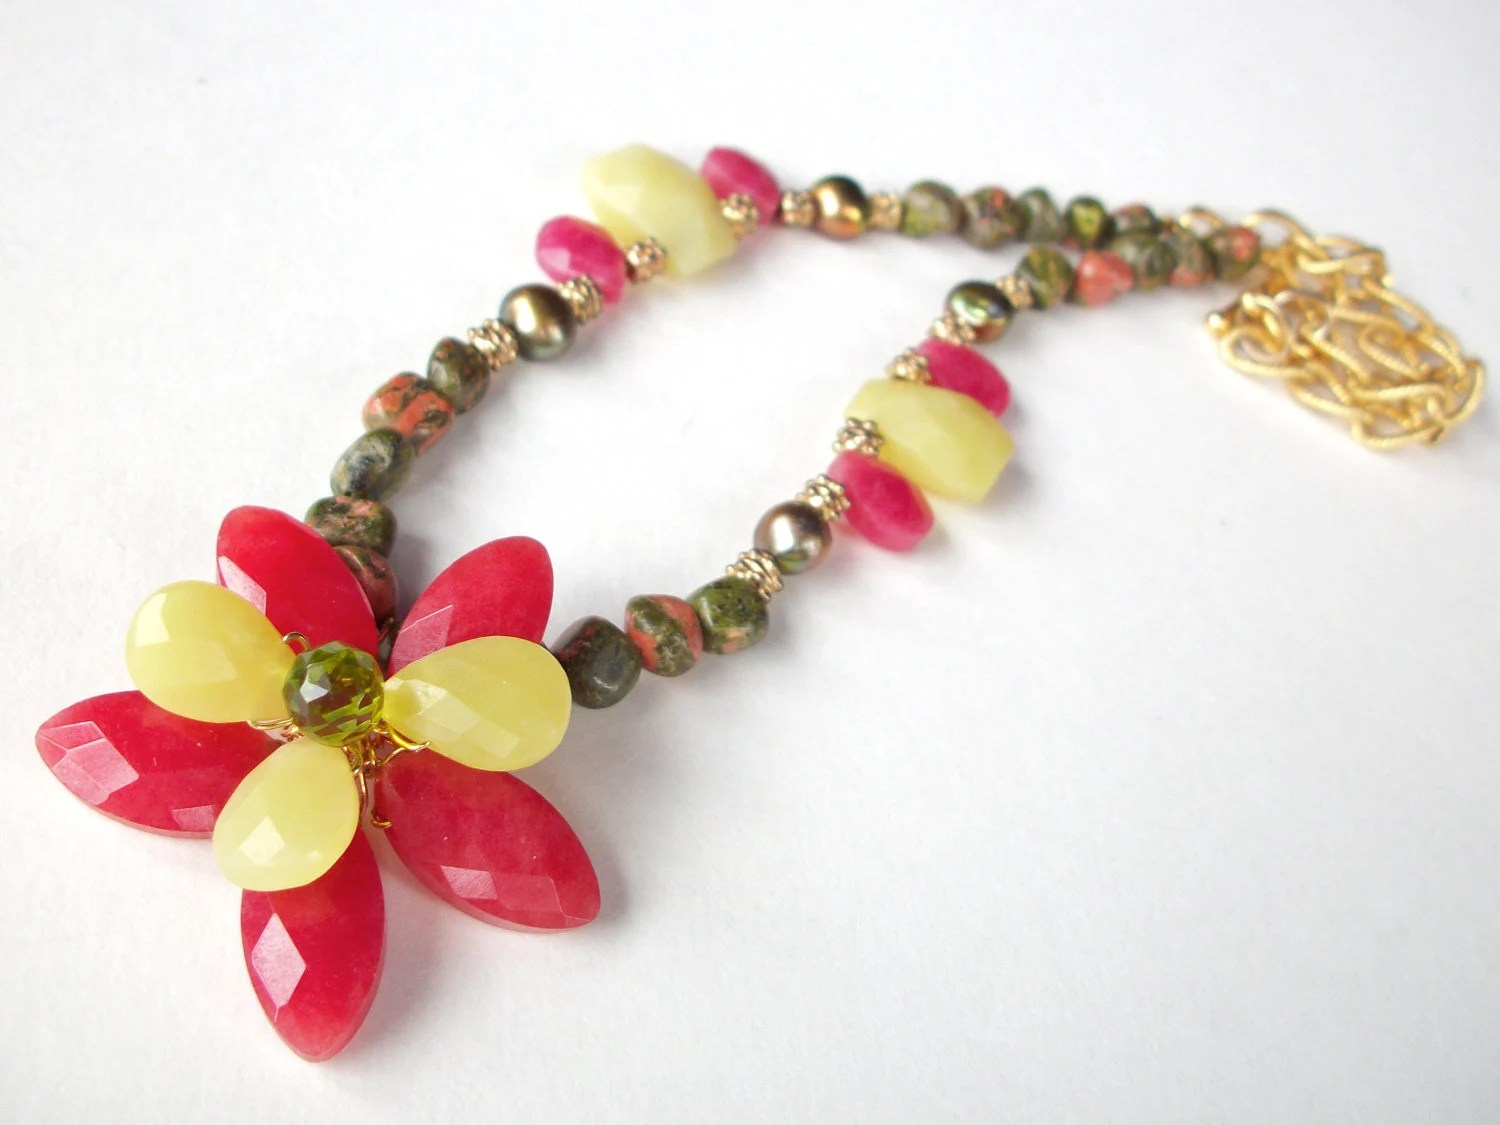 Christmas flower necklace wire wrapped with green and red gemstone beads